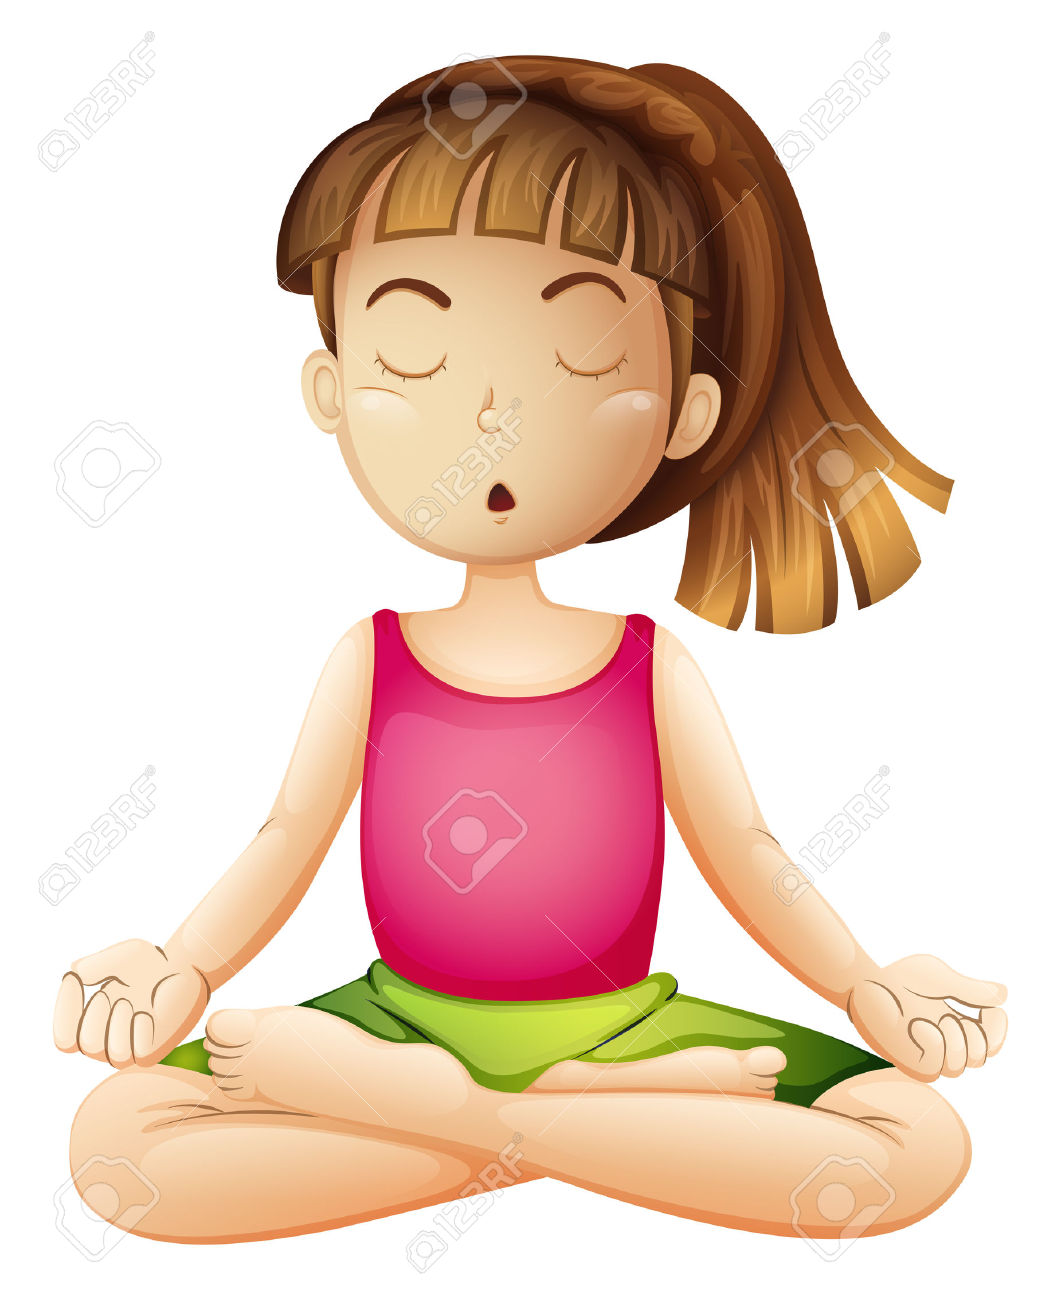 Illustration Of A Young Lady Doing Yoga Alone On A White.